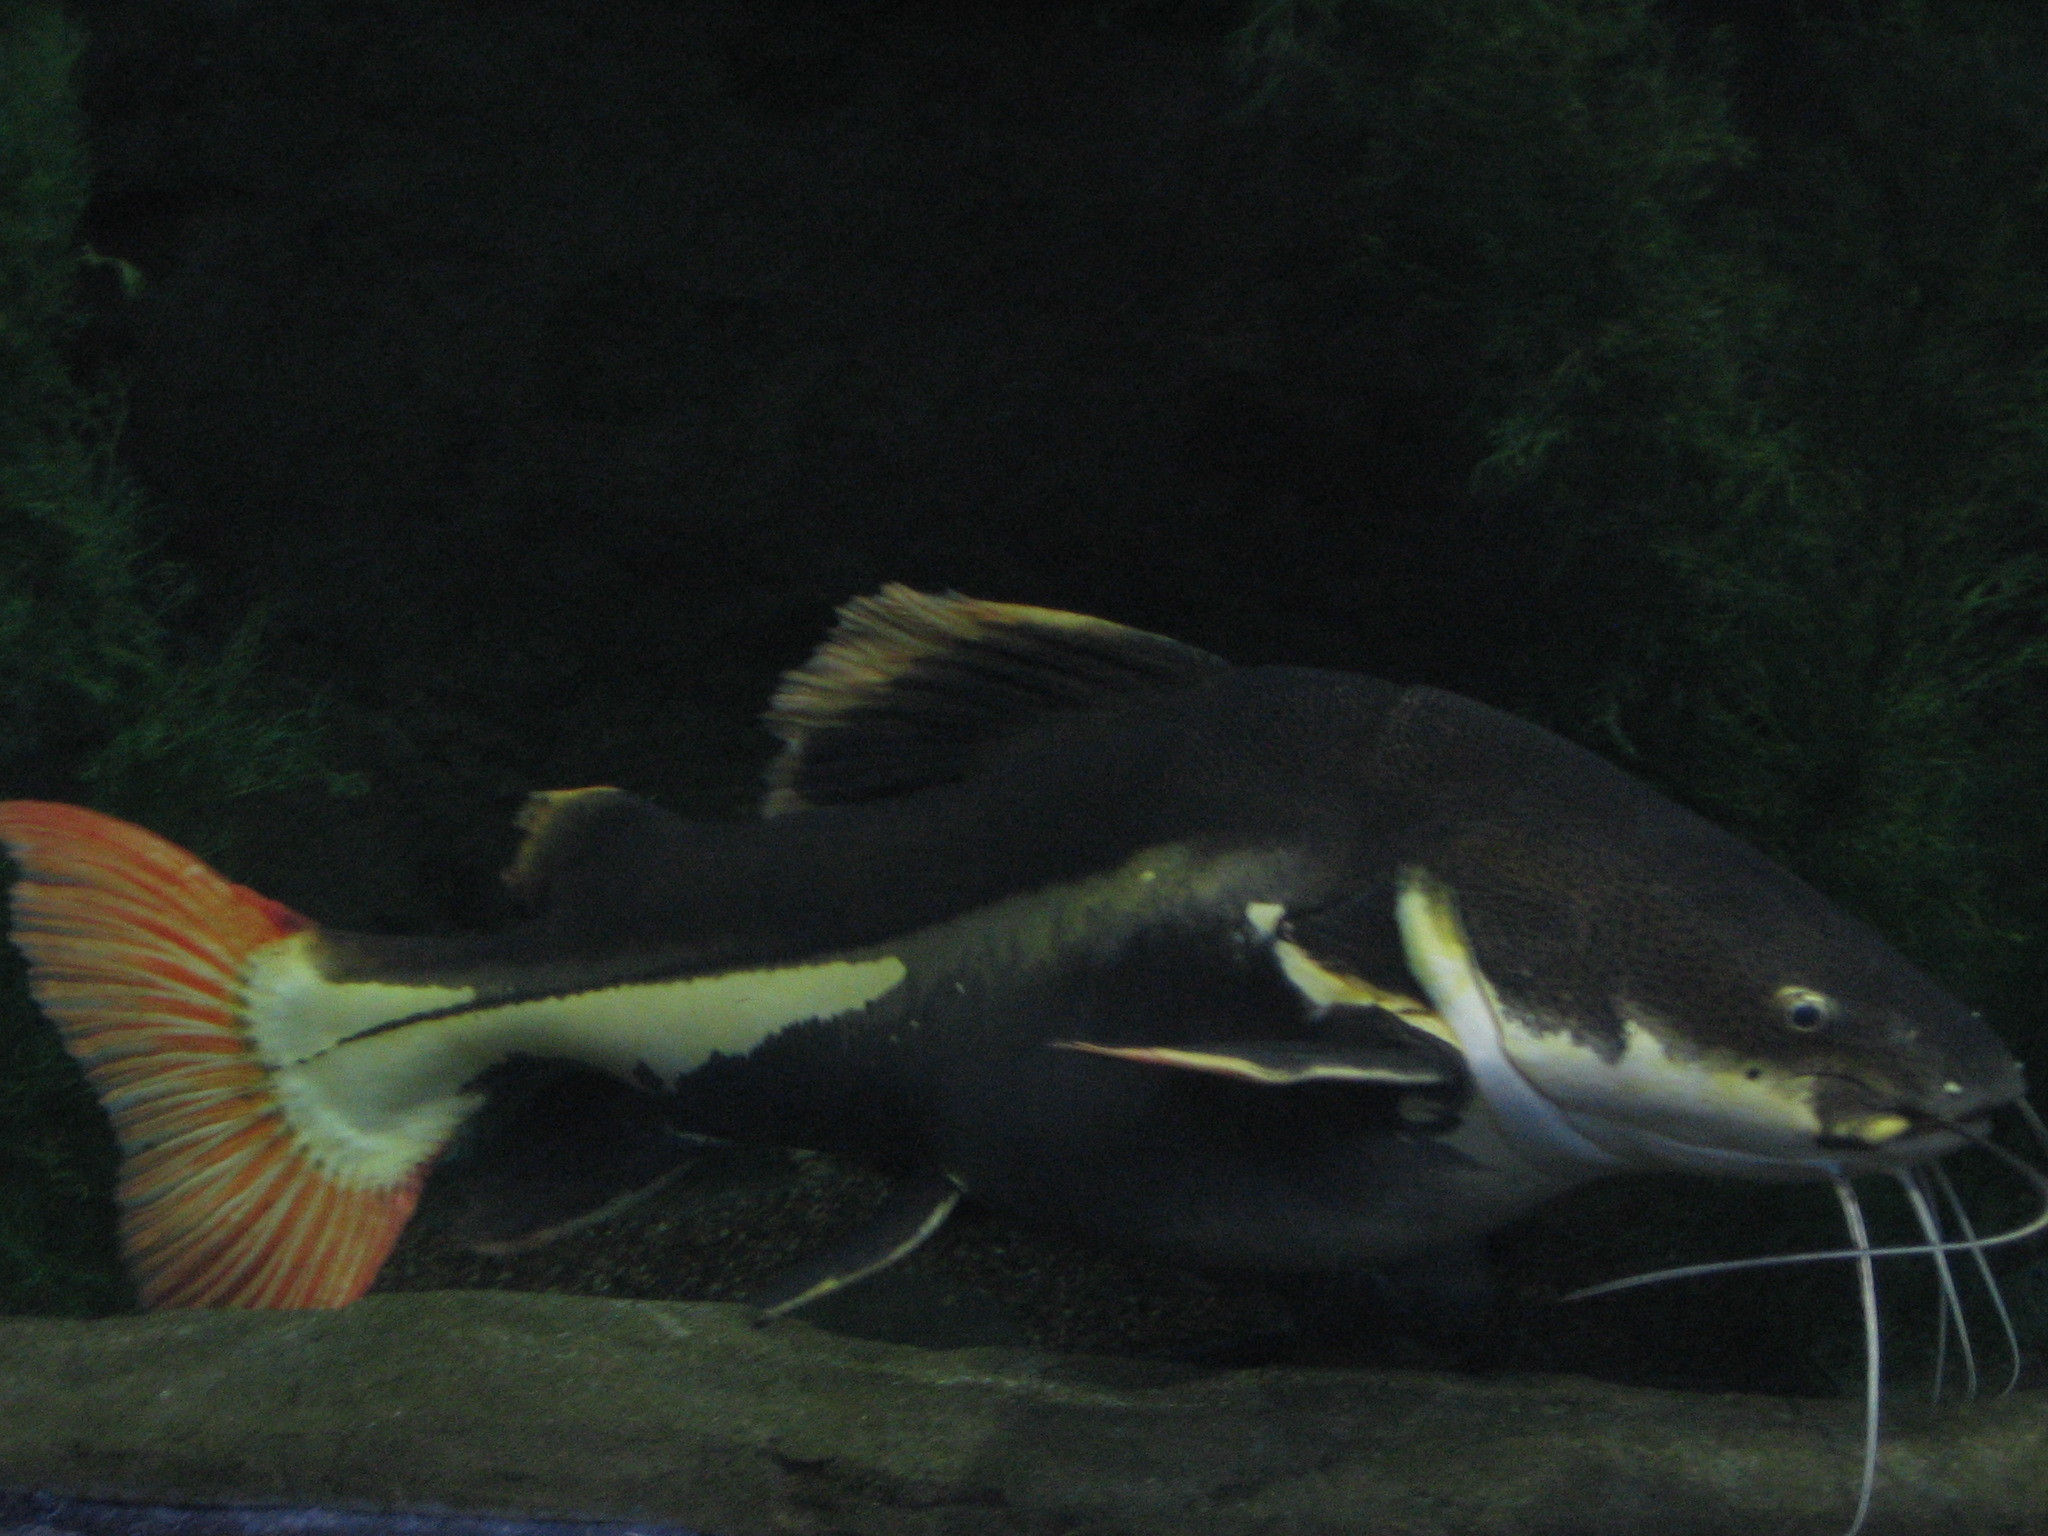 Image of Redtail catfish